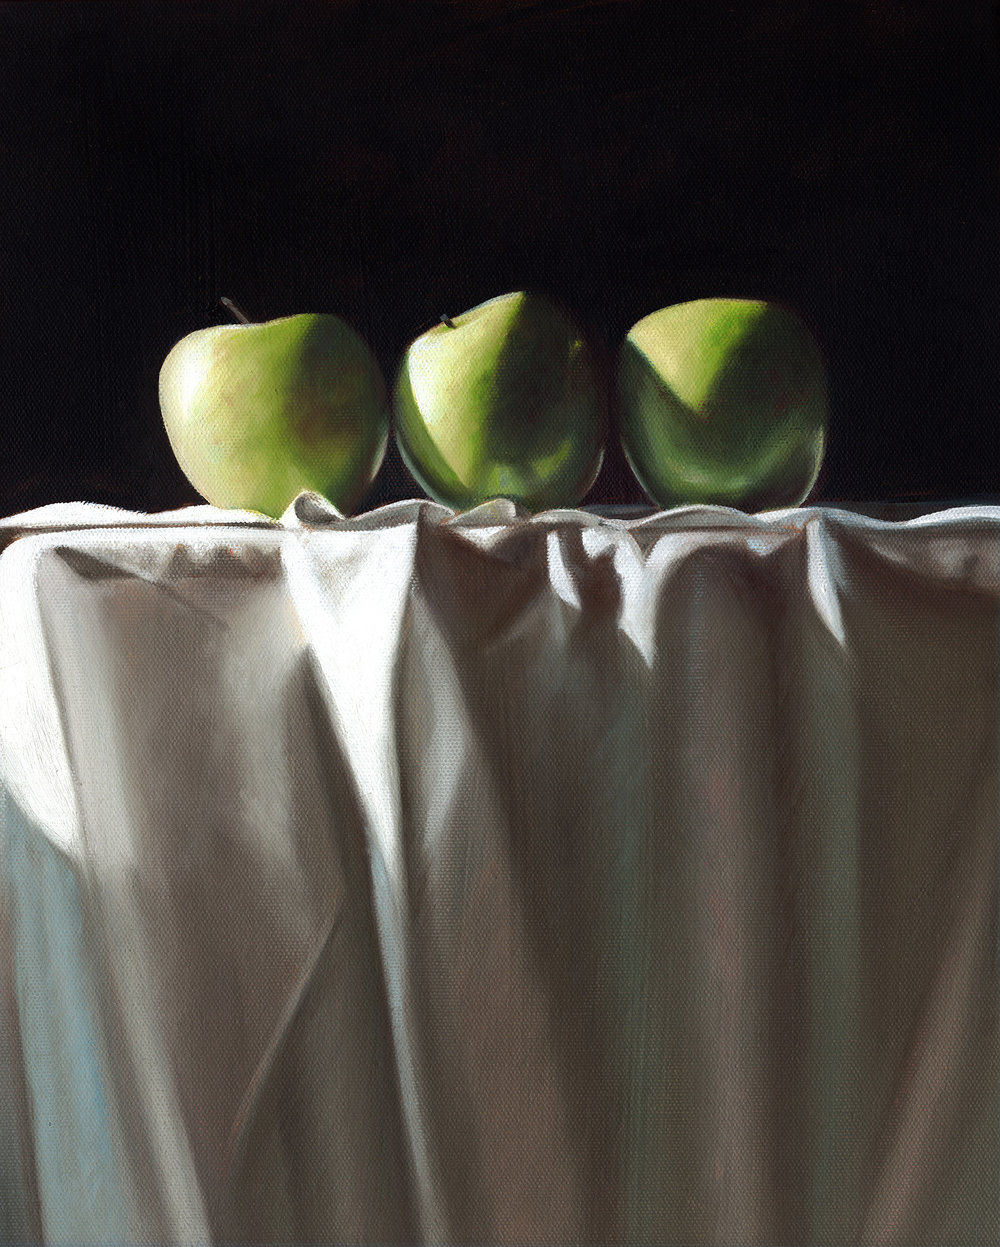 Three Apples  |  12 x 16  |  Oil on canvas